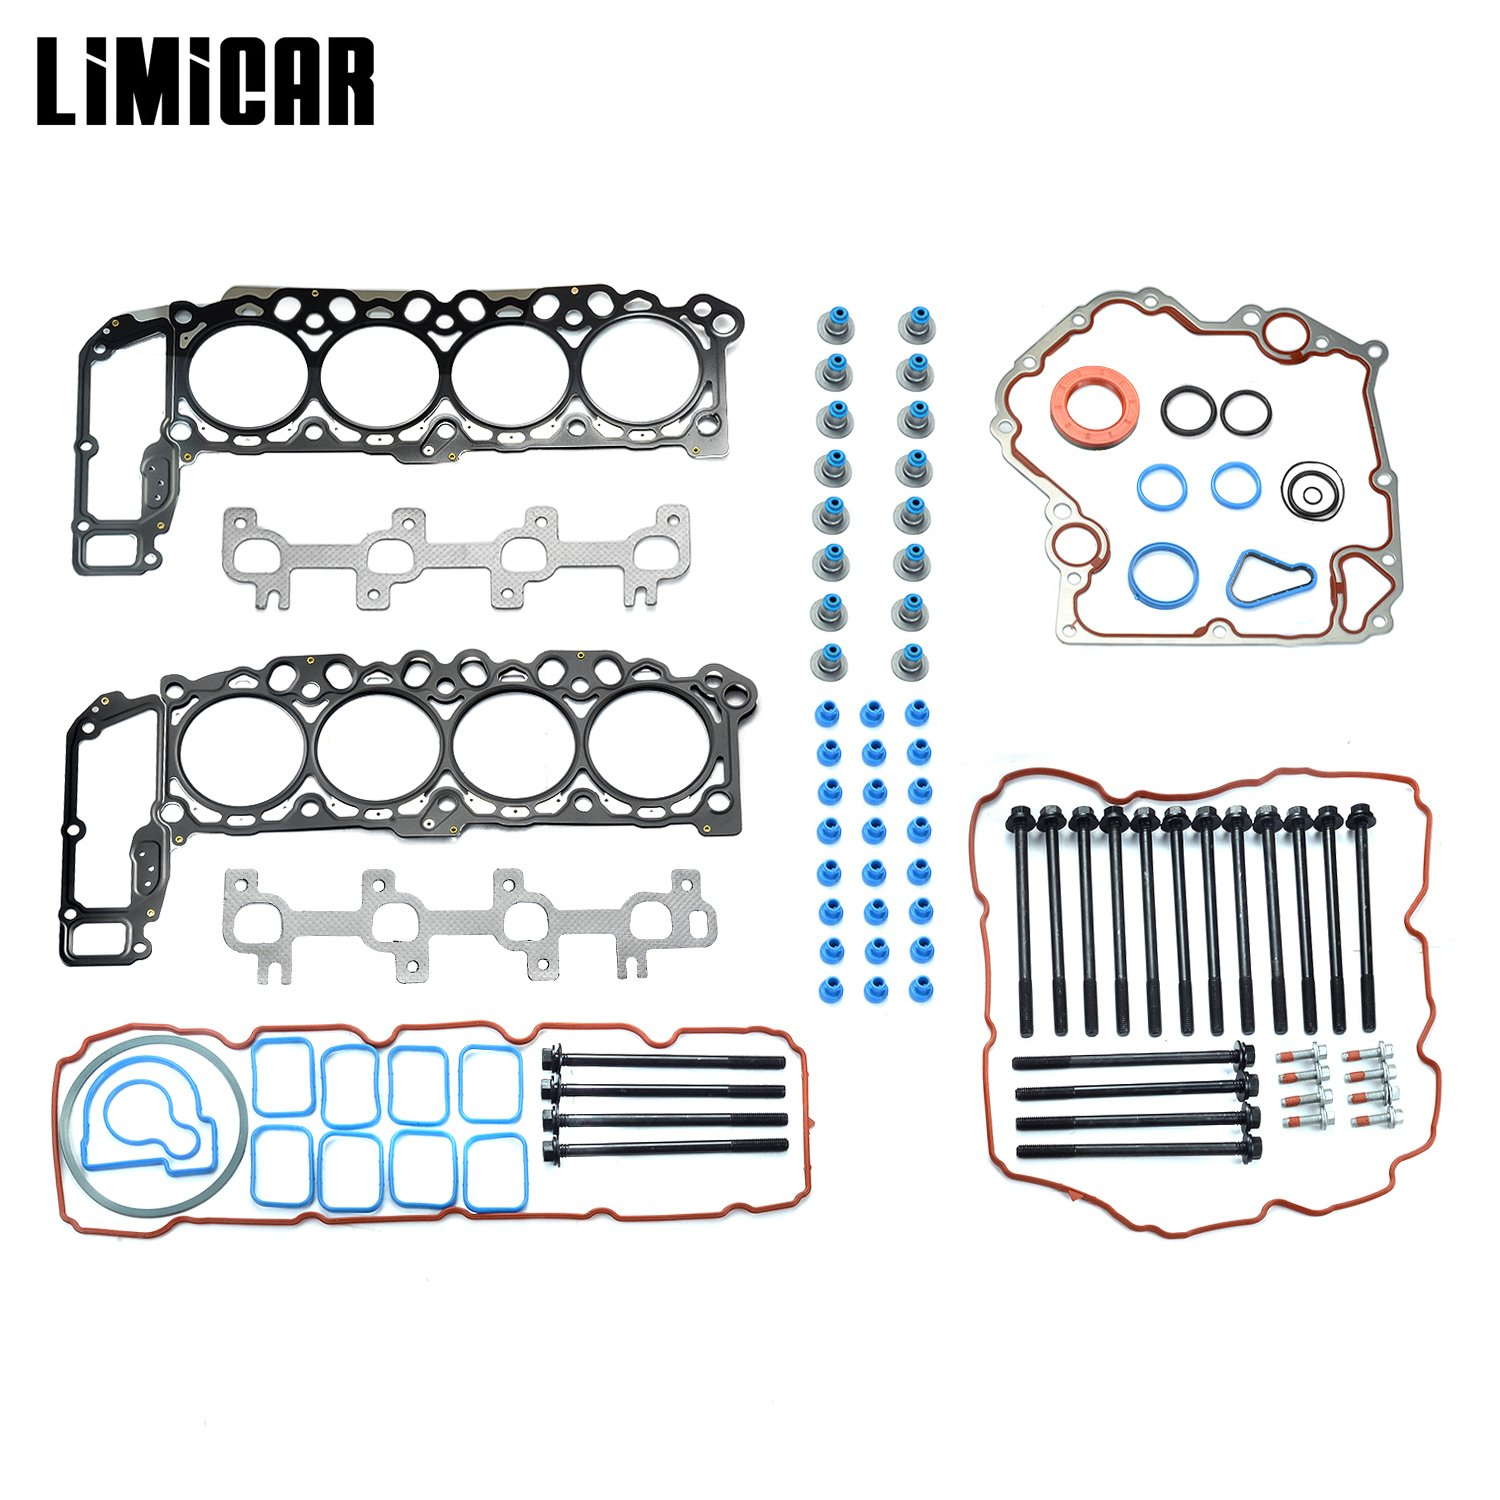 Limicar Valve Cover Gasket Grommets Kit For 2000 2001 2002 2003 Jeep Cherokee Wiring Harness Dodge Dakota Durango